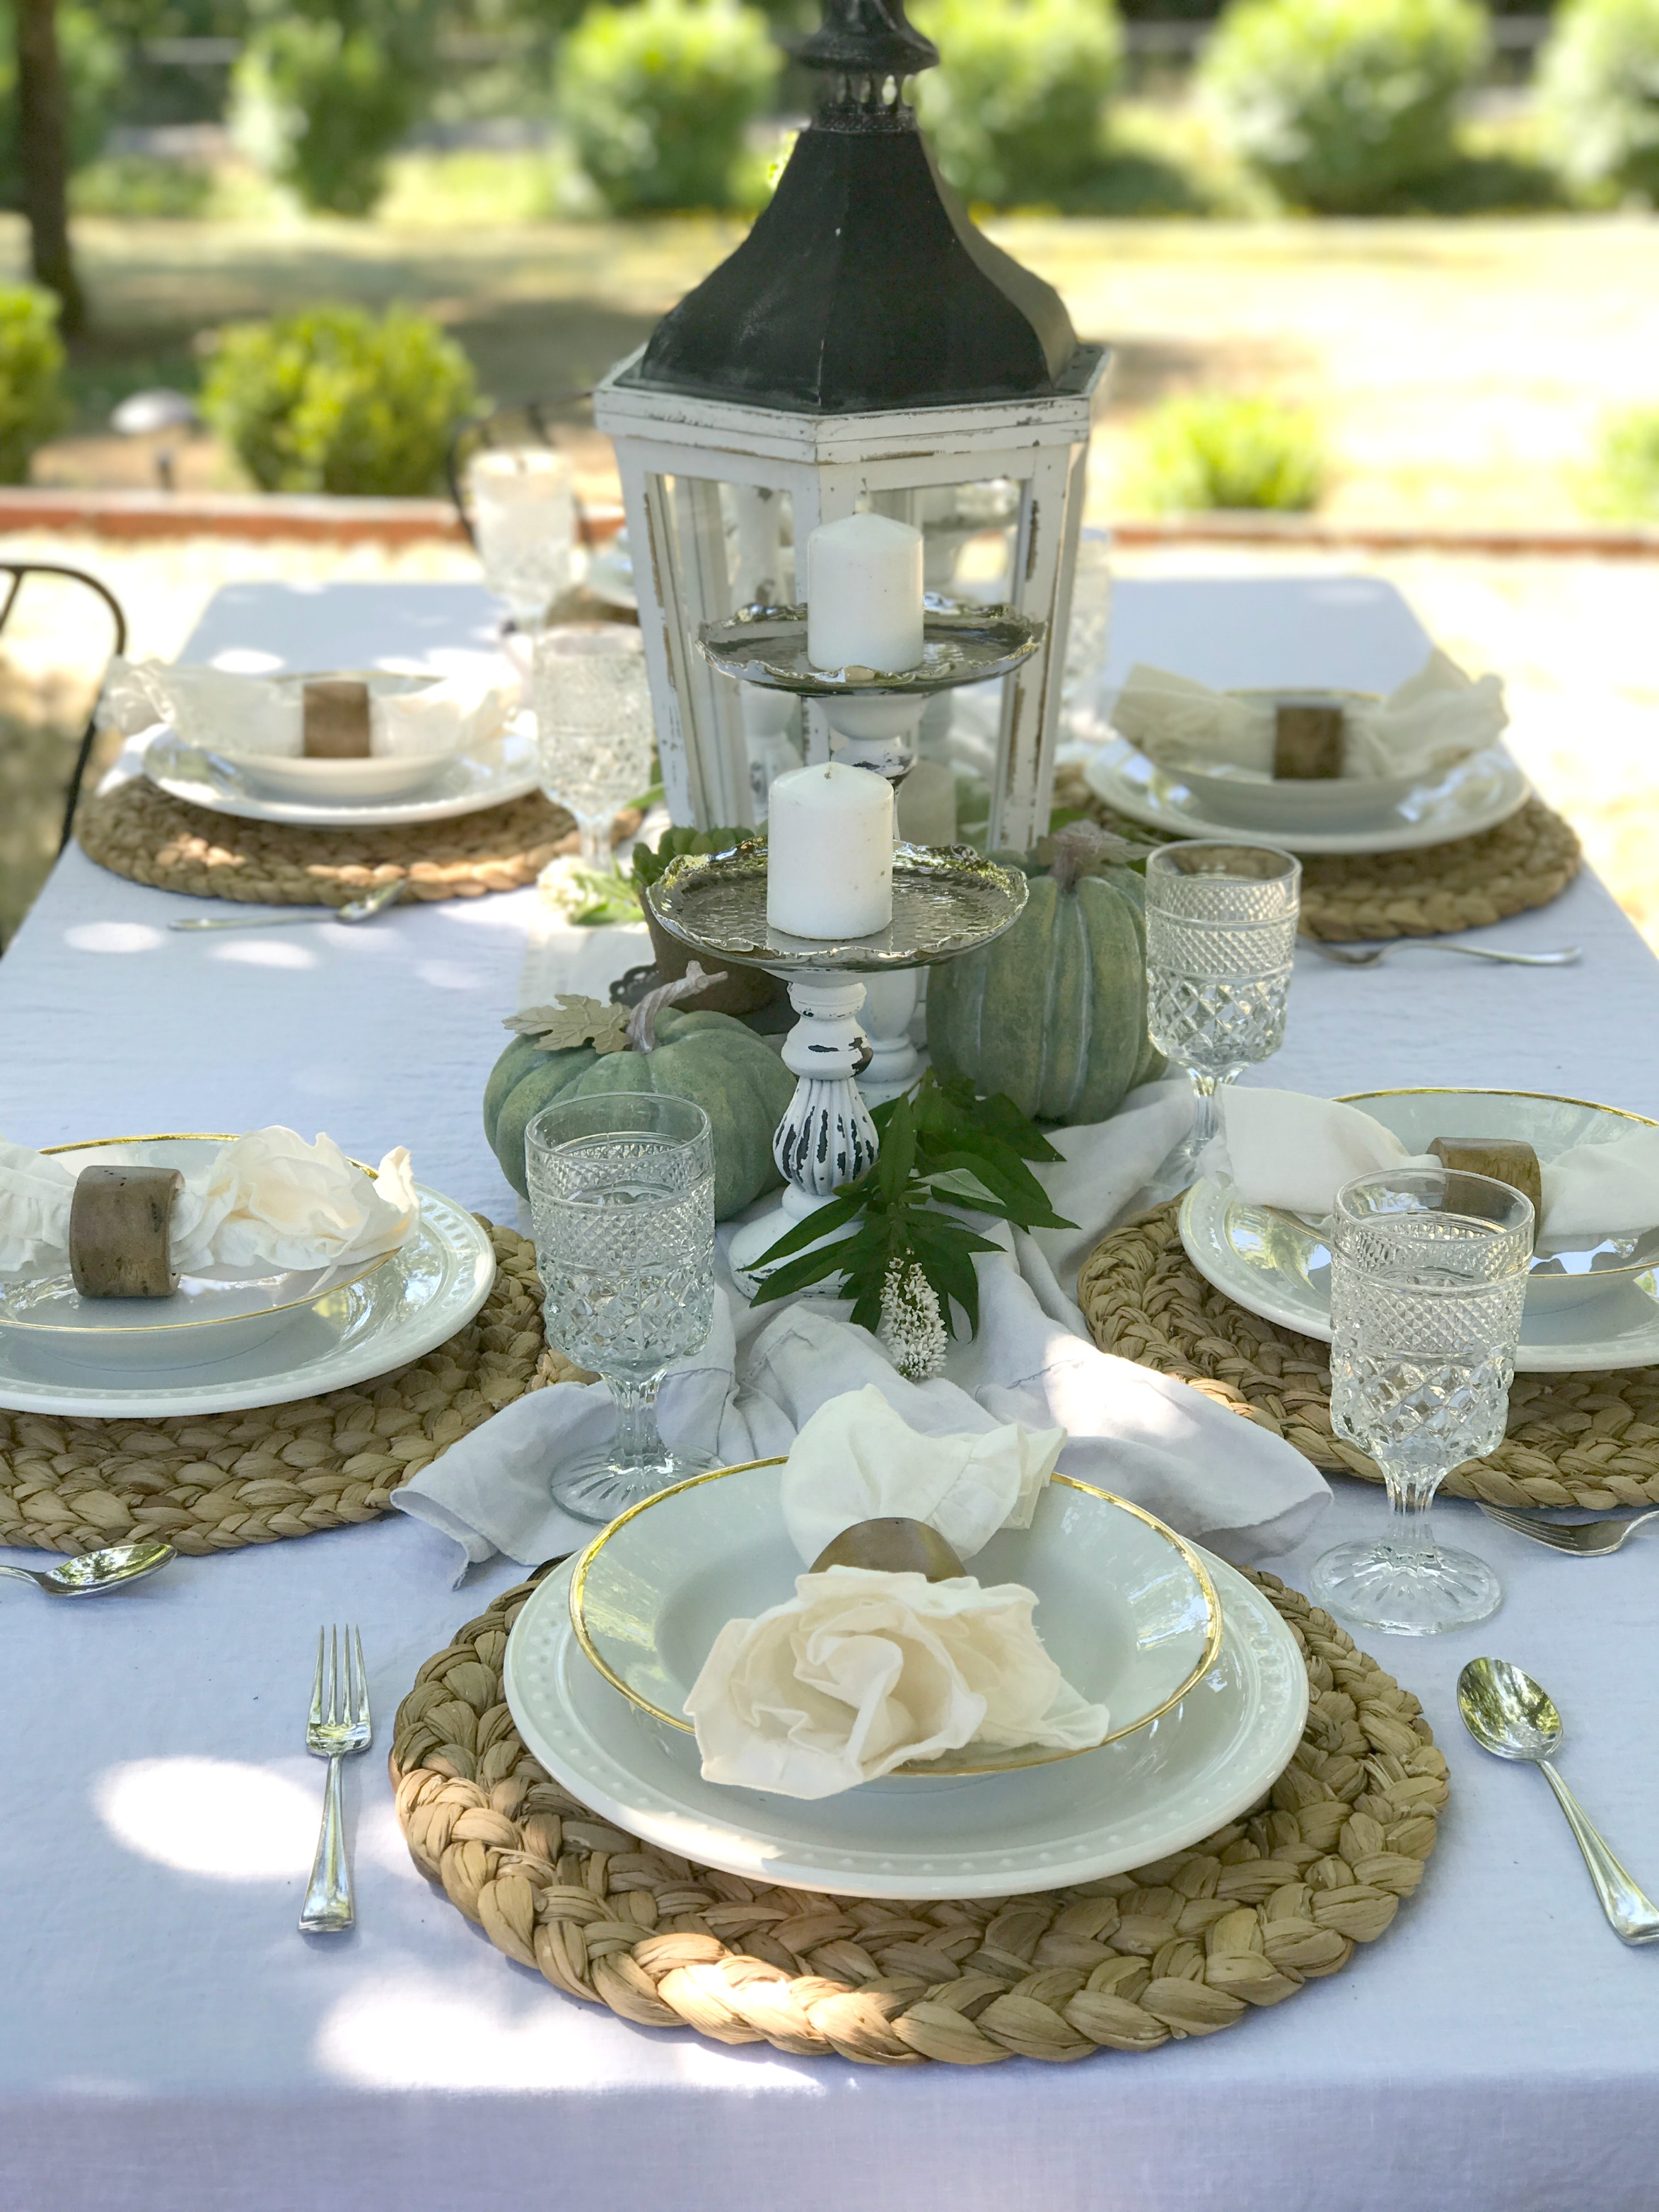 12 Trendy Fall Tablescapes